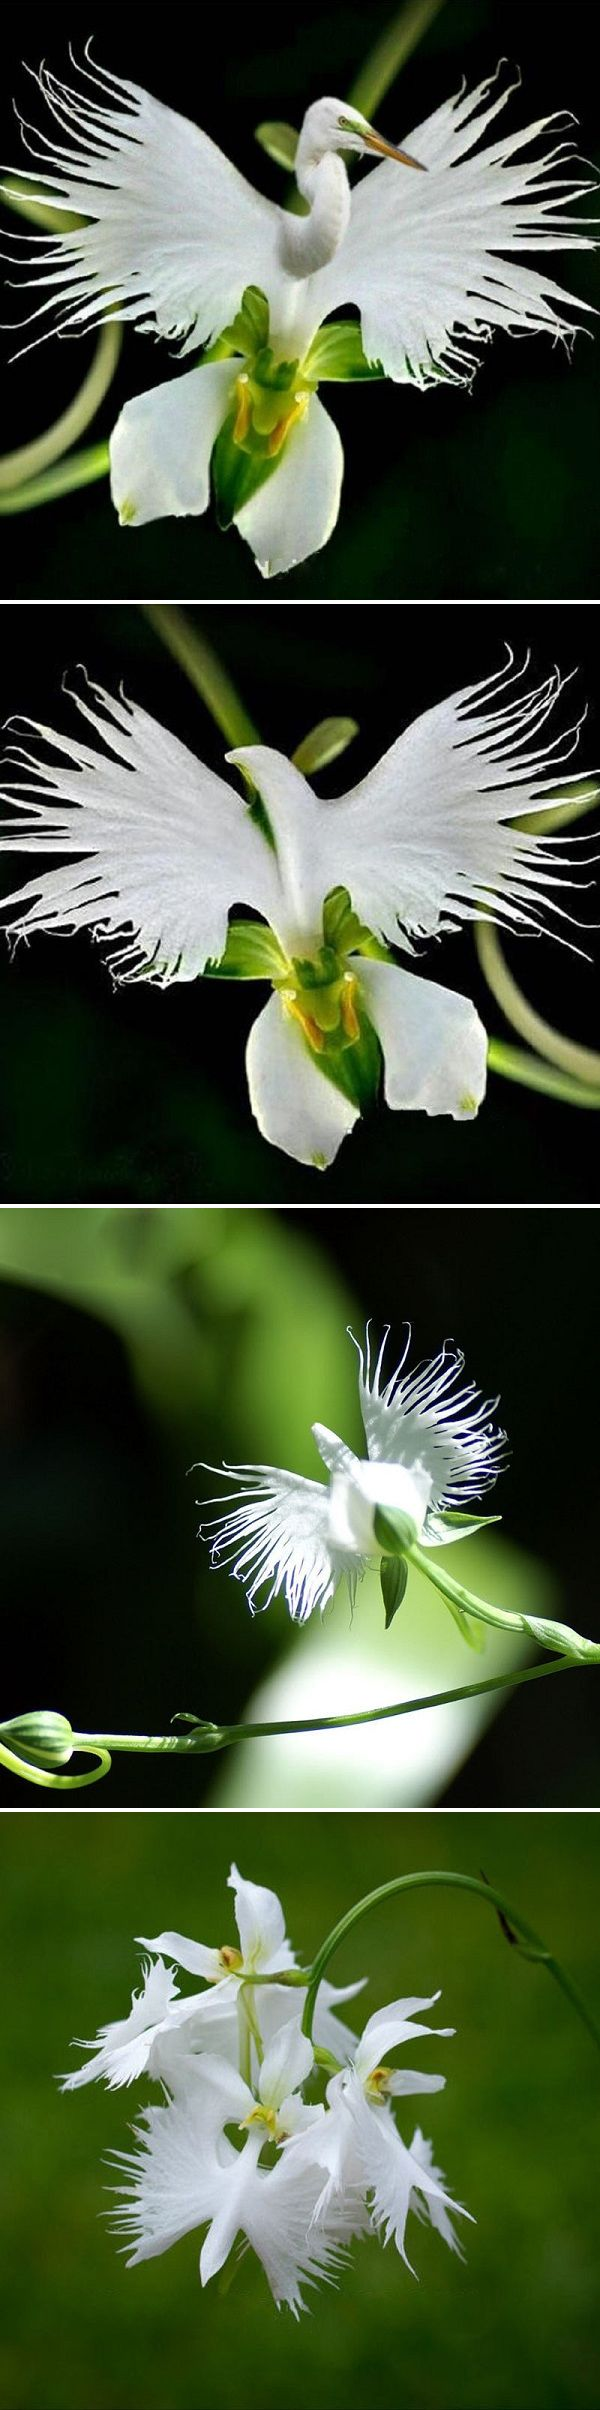 US$2.69  200pcs Japanese Egret Flowers Seeds White Egret Orchid Seeds Radiata Rare White Orchid Home Garden